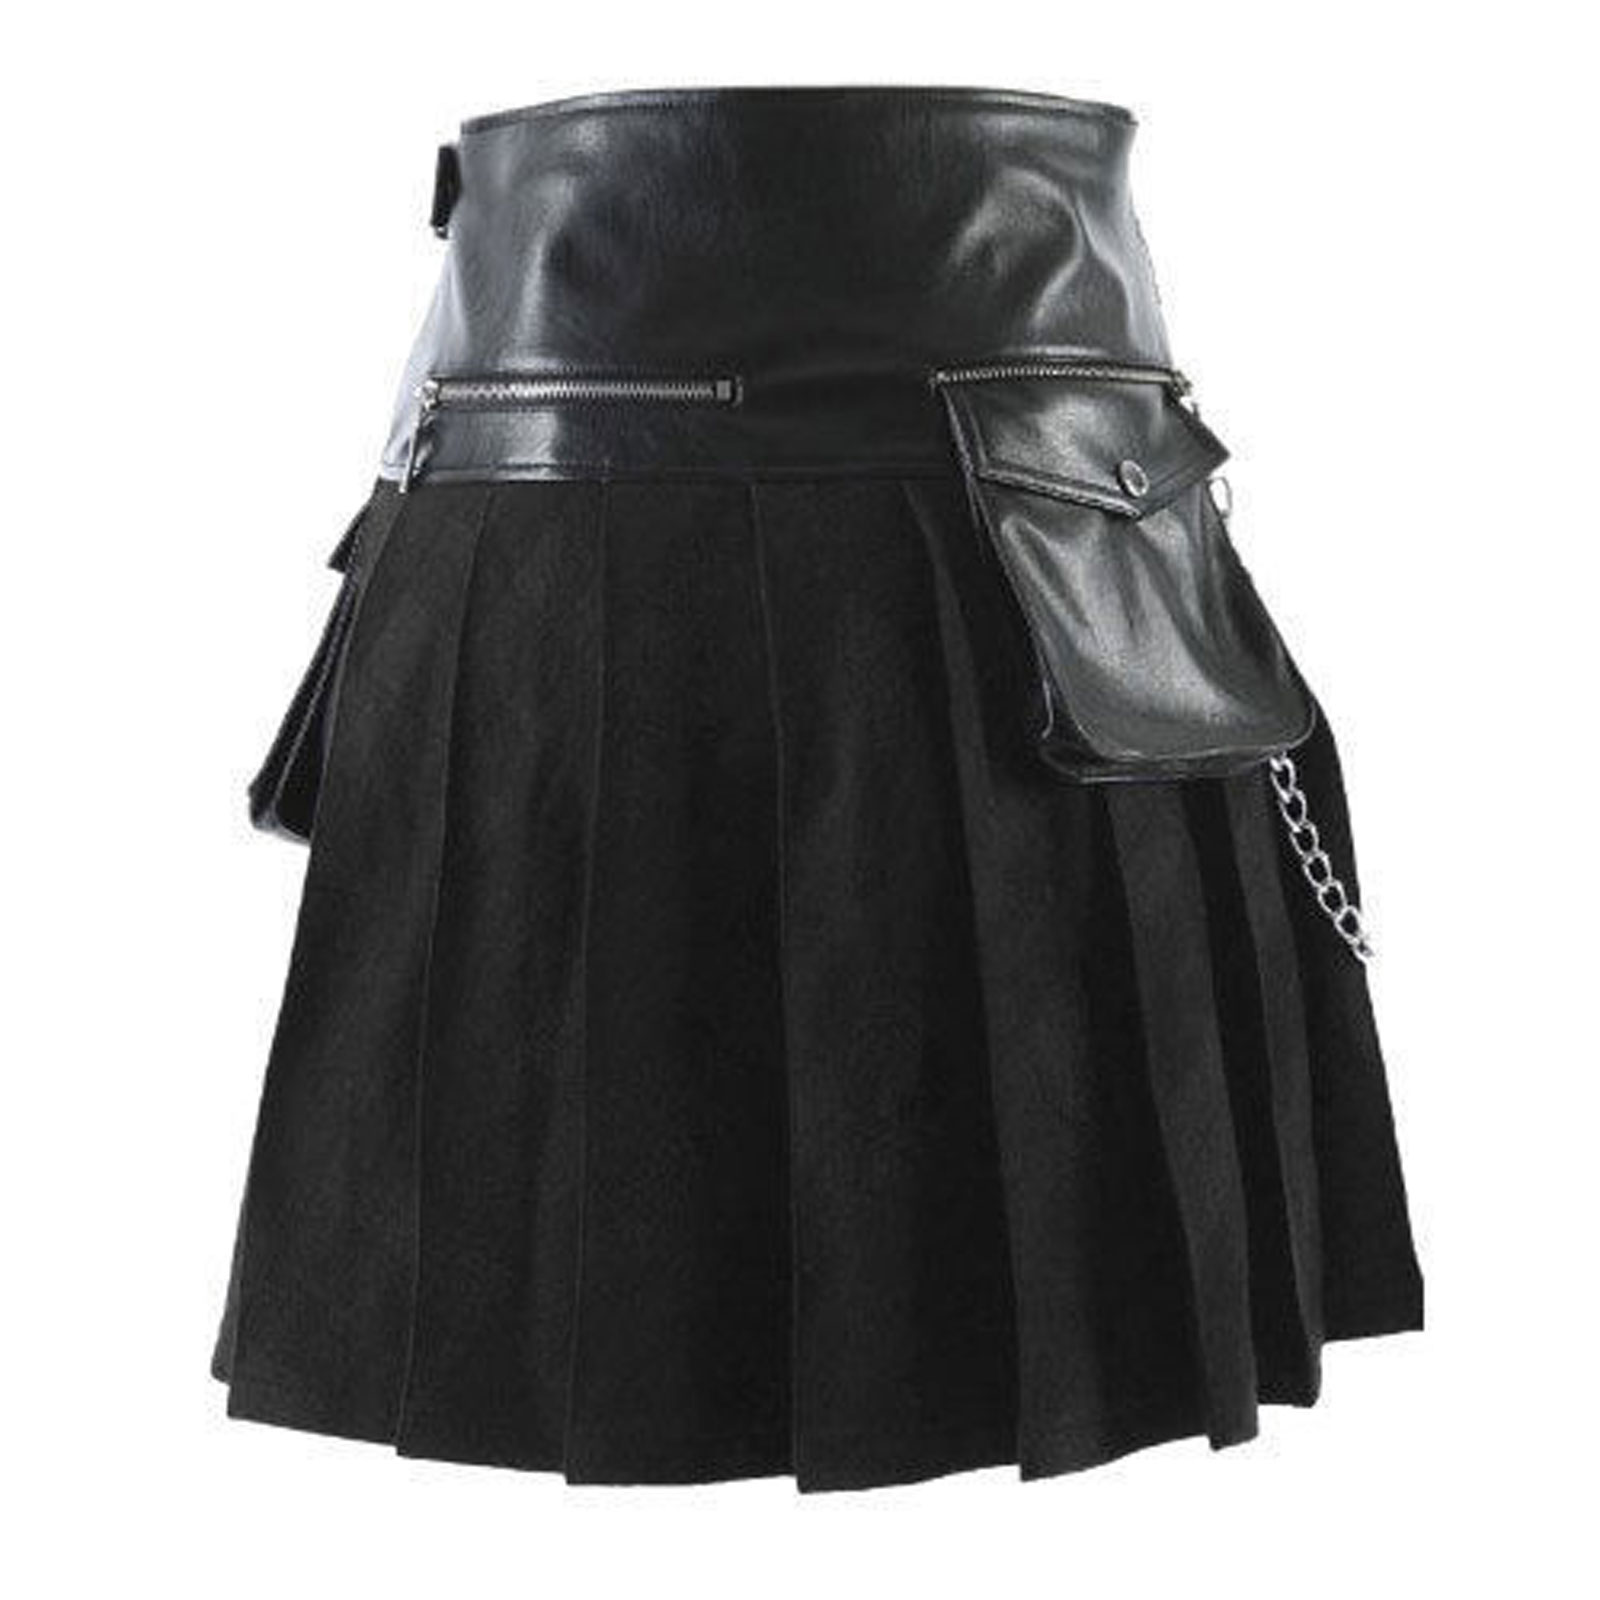 scottish-black-gladiator-viking-leather-kilt-front